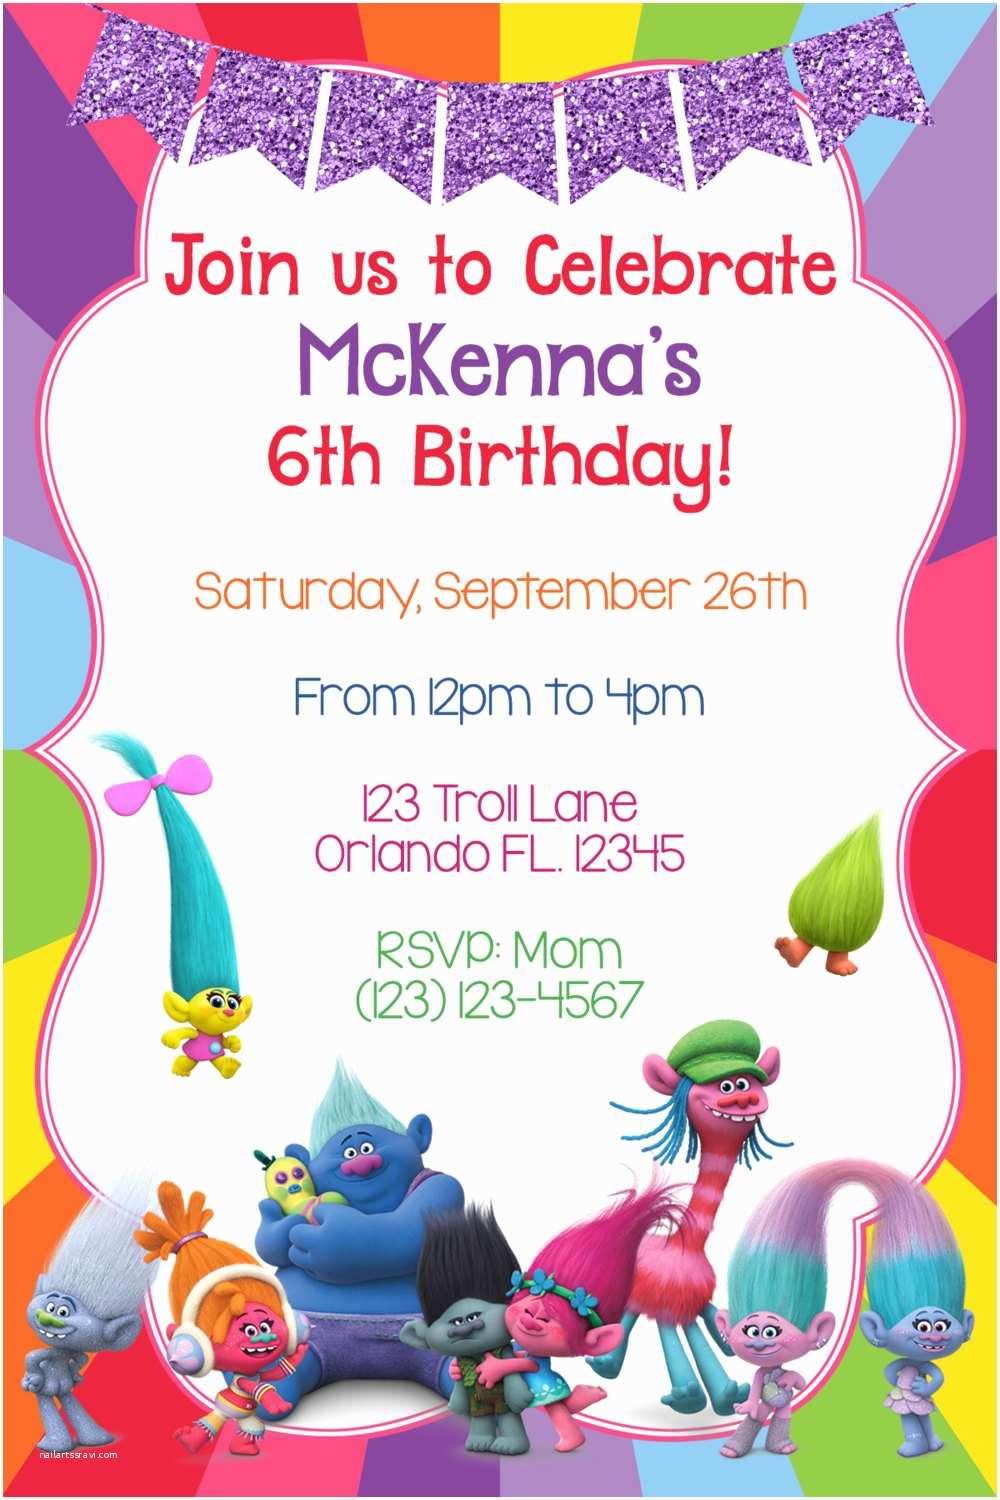 Trolls Party Invitations Trolls Invitation Trolls Birthday Troll Invites Dreamworks